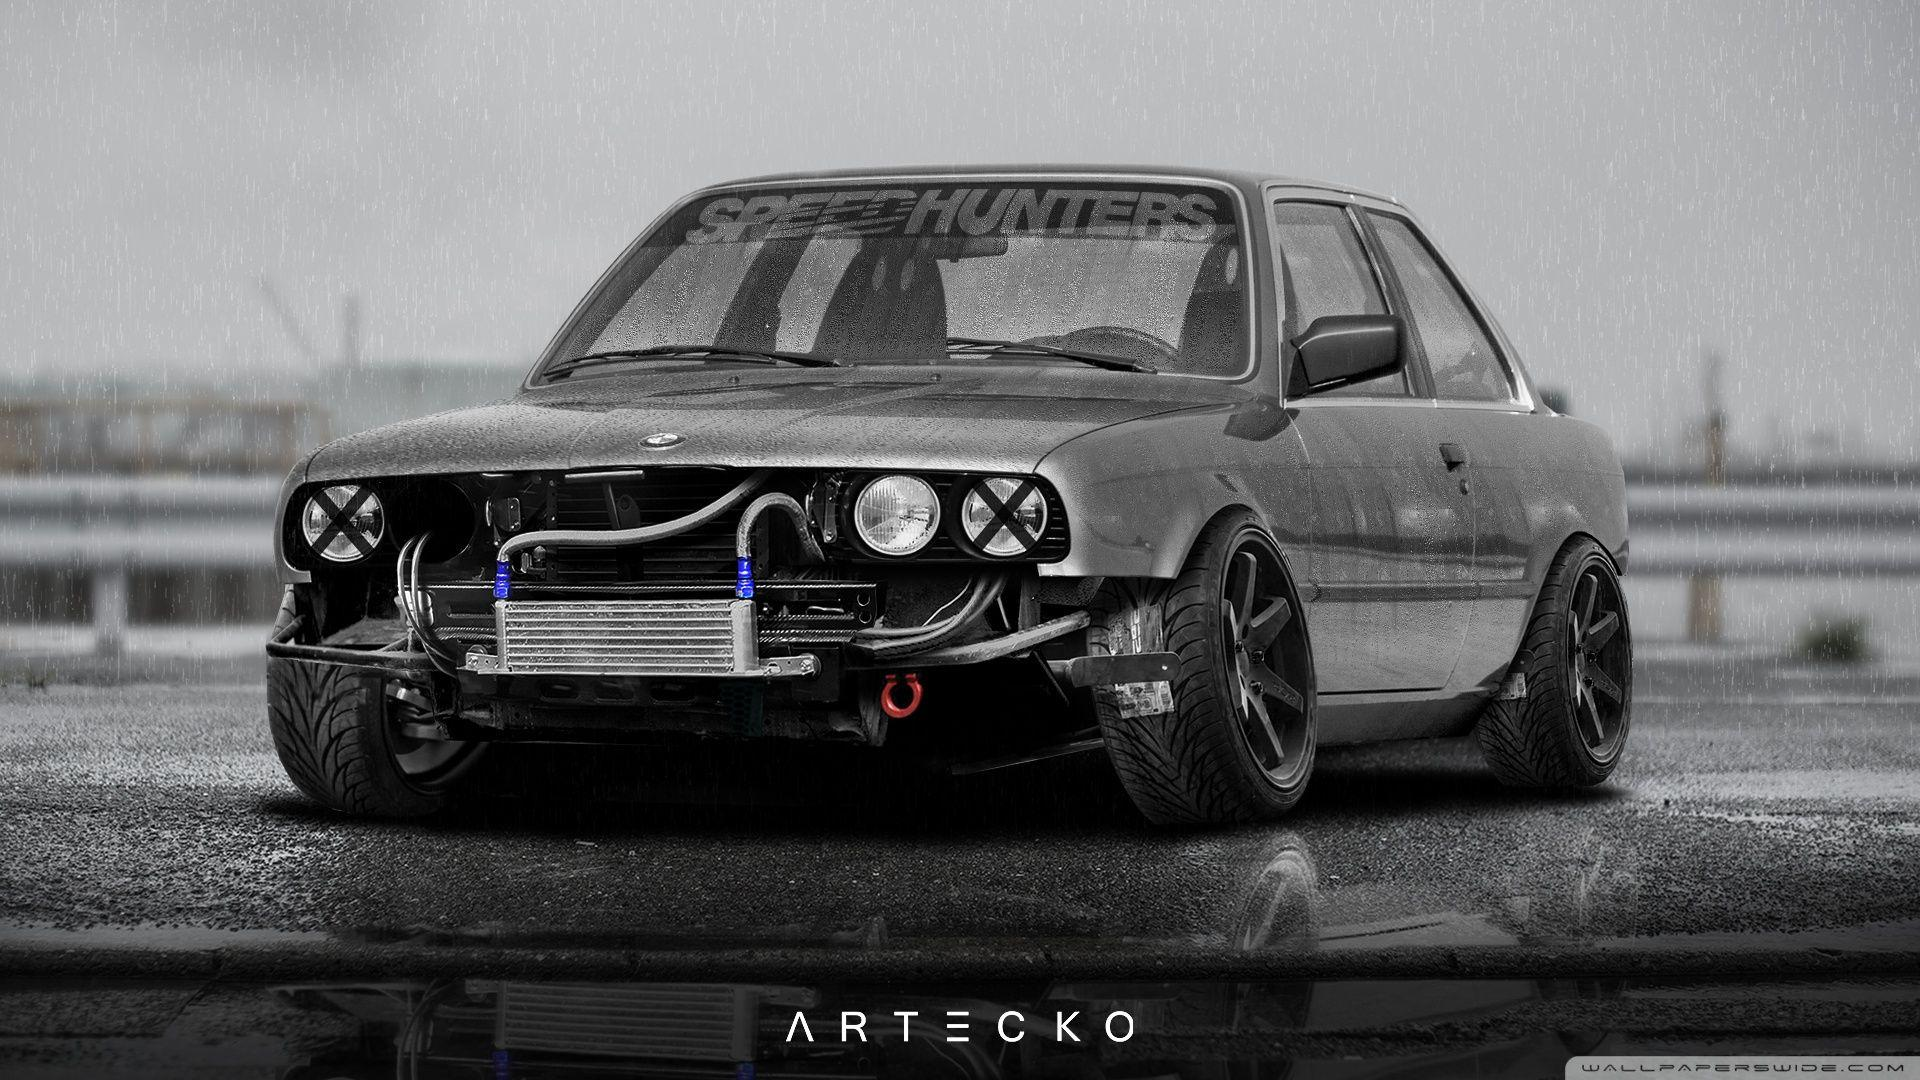 Bmw Hd Wallpapers Background: Old BMW Wallpapers